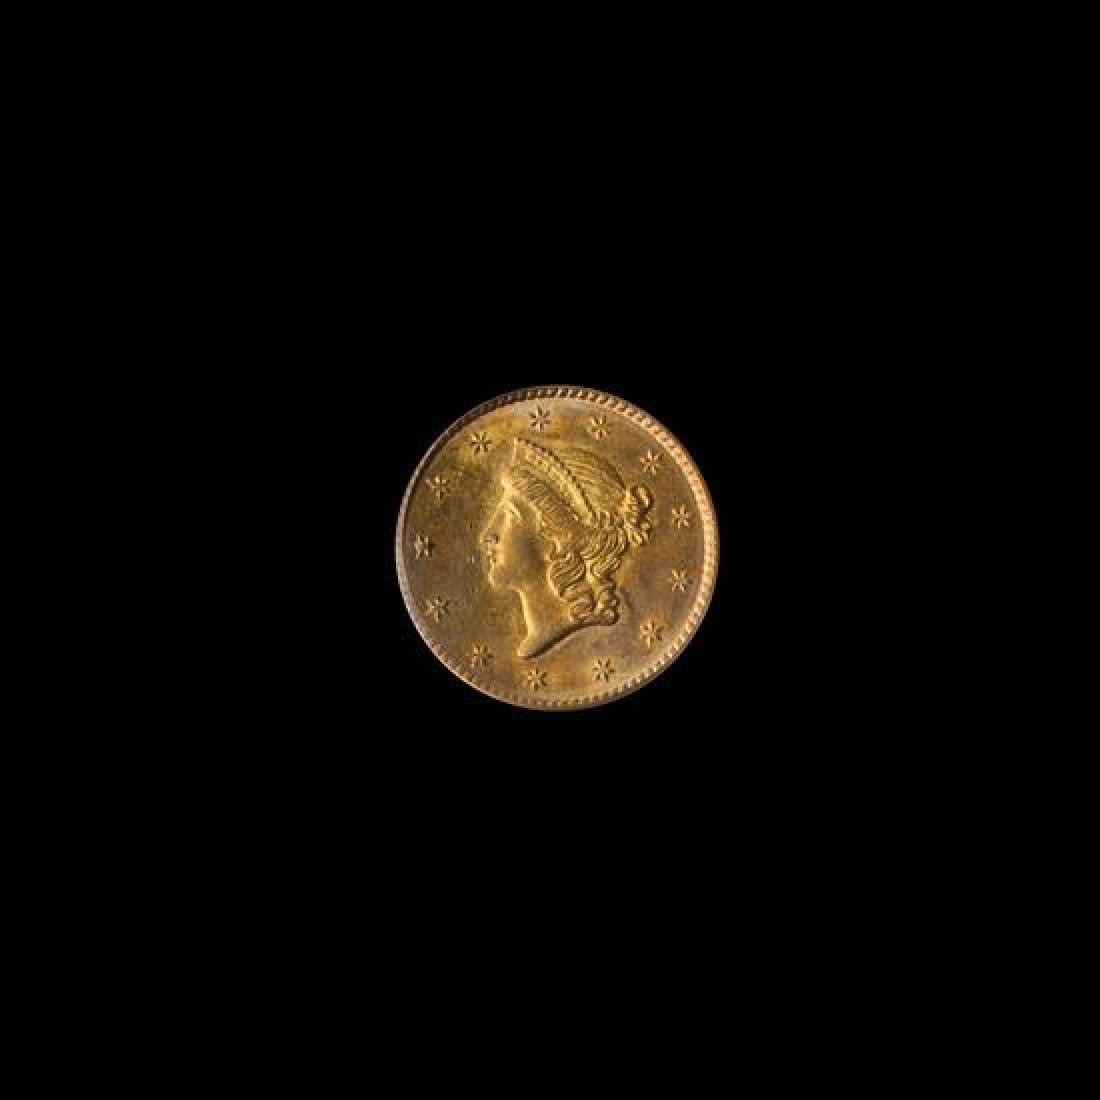 A United States 1851 Liberty Head $1 Gold Coin